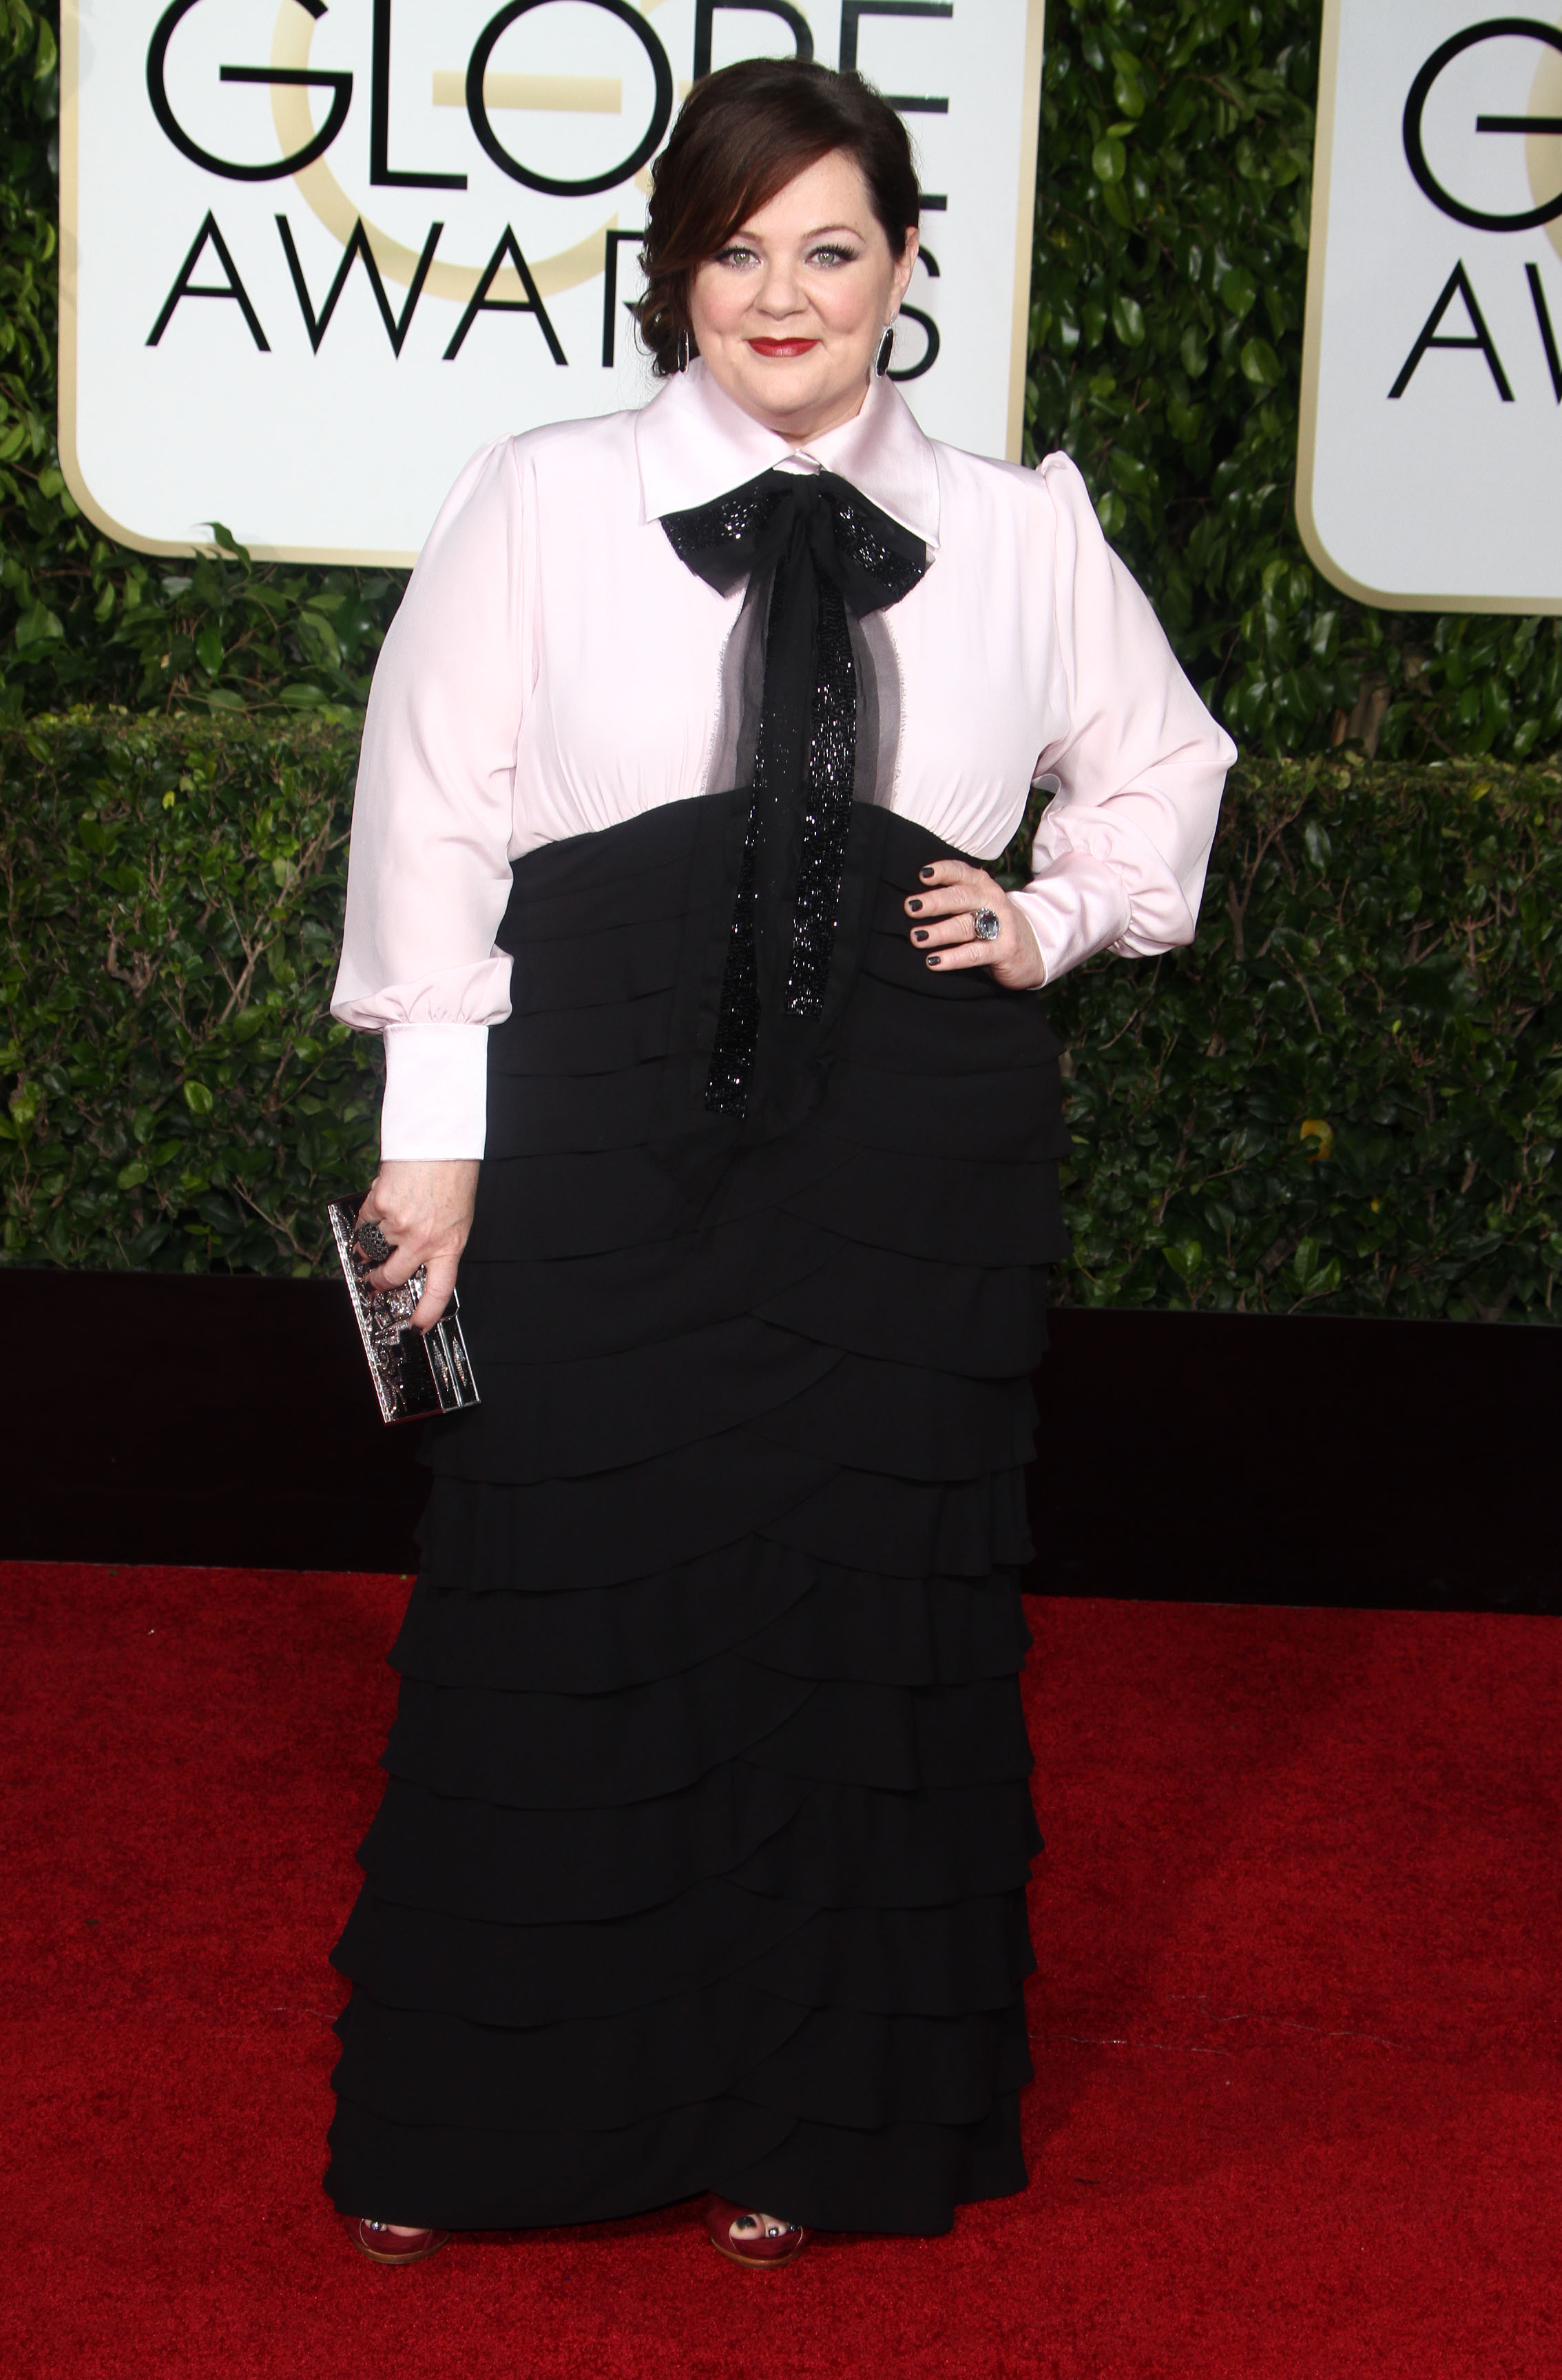 Golden Globes Fug Carpet: Melissa McCarthy in Random Stuff From Her Closet, Seriously